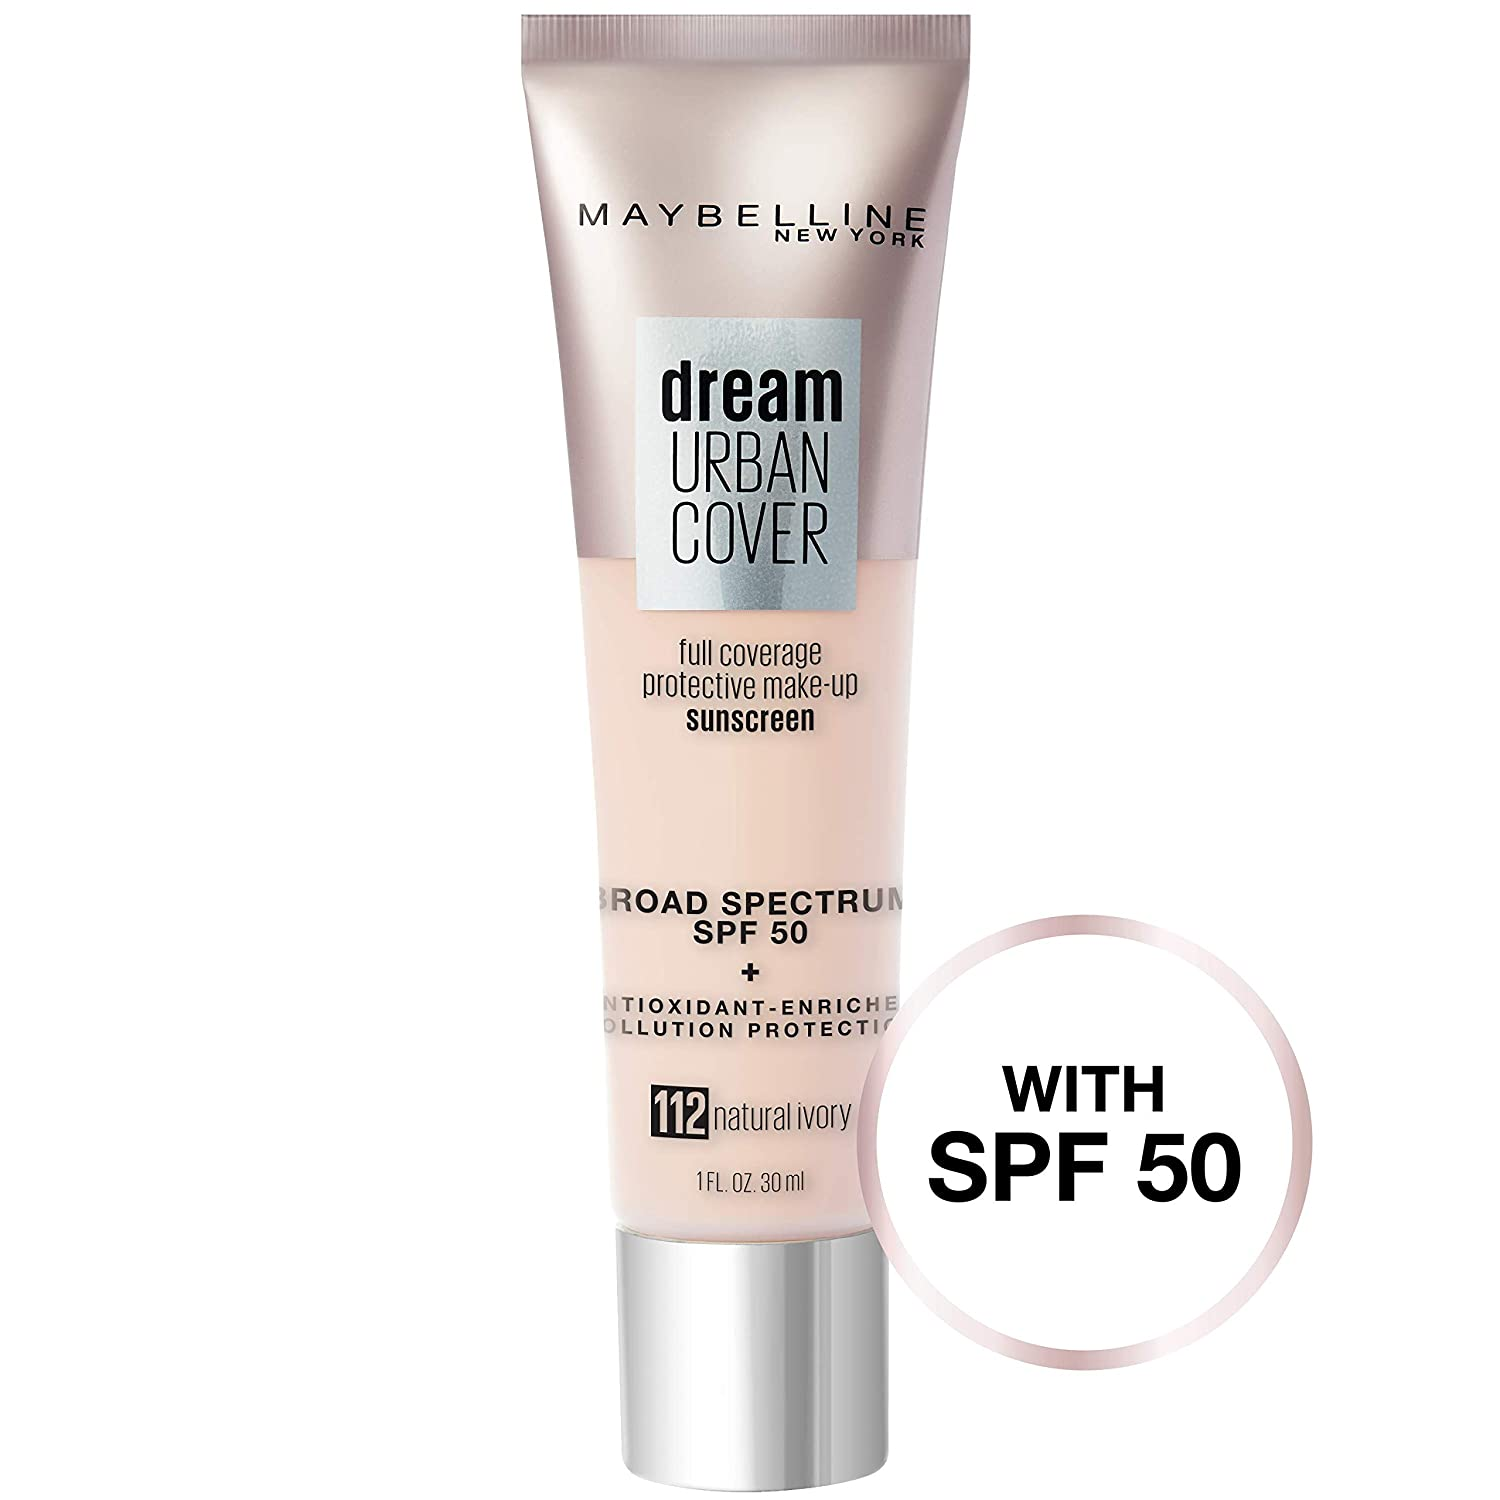 Maybelline Dream Urban Cover Flawless Coverage Foundation Makeup, SPF 50, Natural Ivory